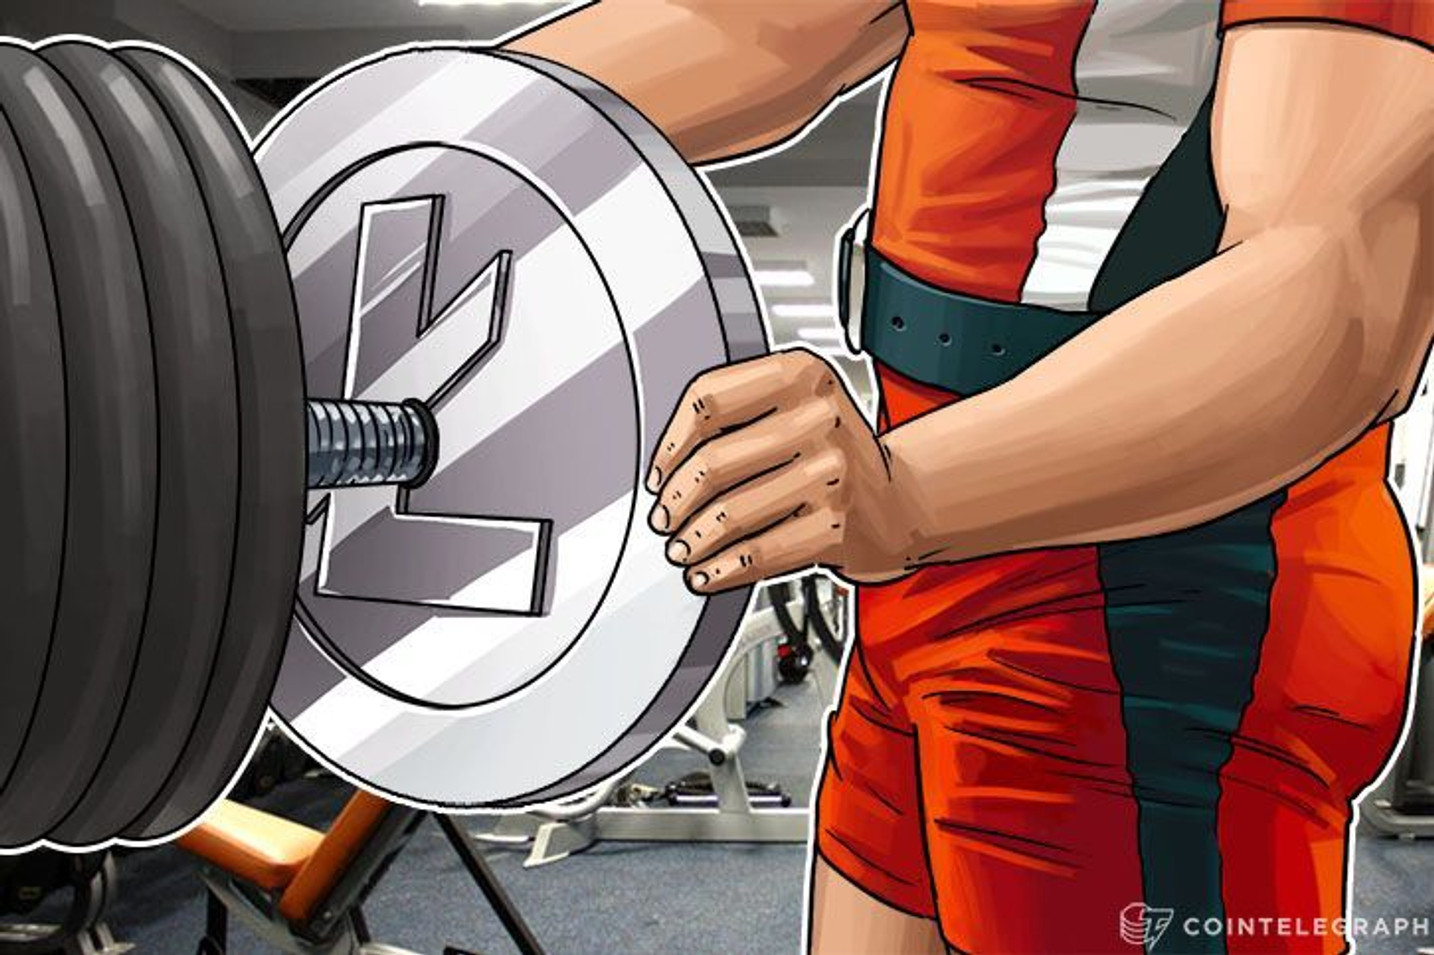 Litecoin to Become One of The Best Investment Options: Geoffrey Caveney